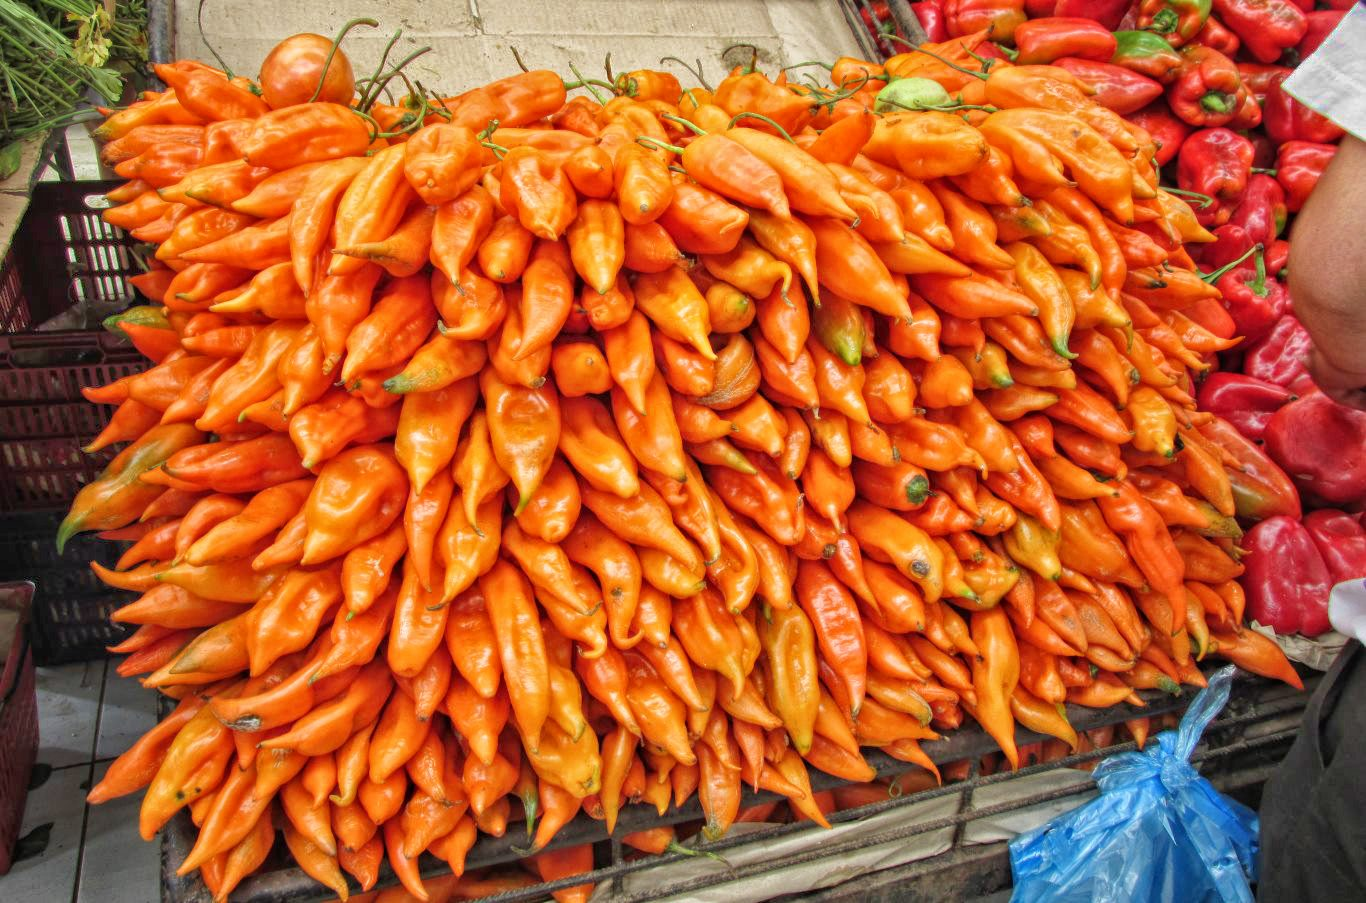 Ingredients in Peruvian cuisine: Aji amarillo